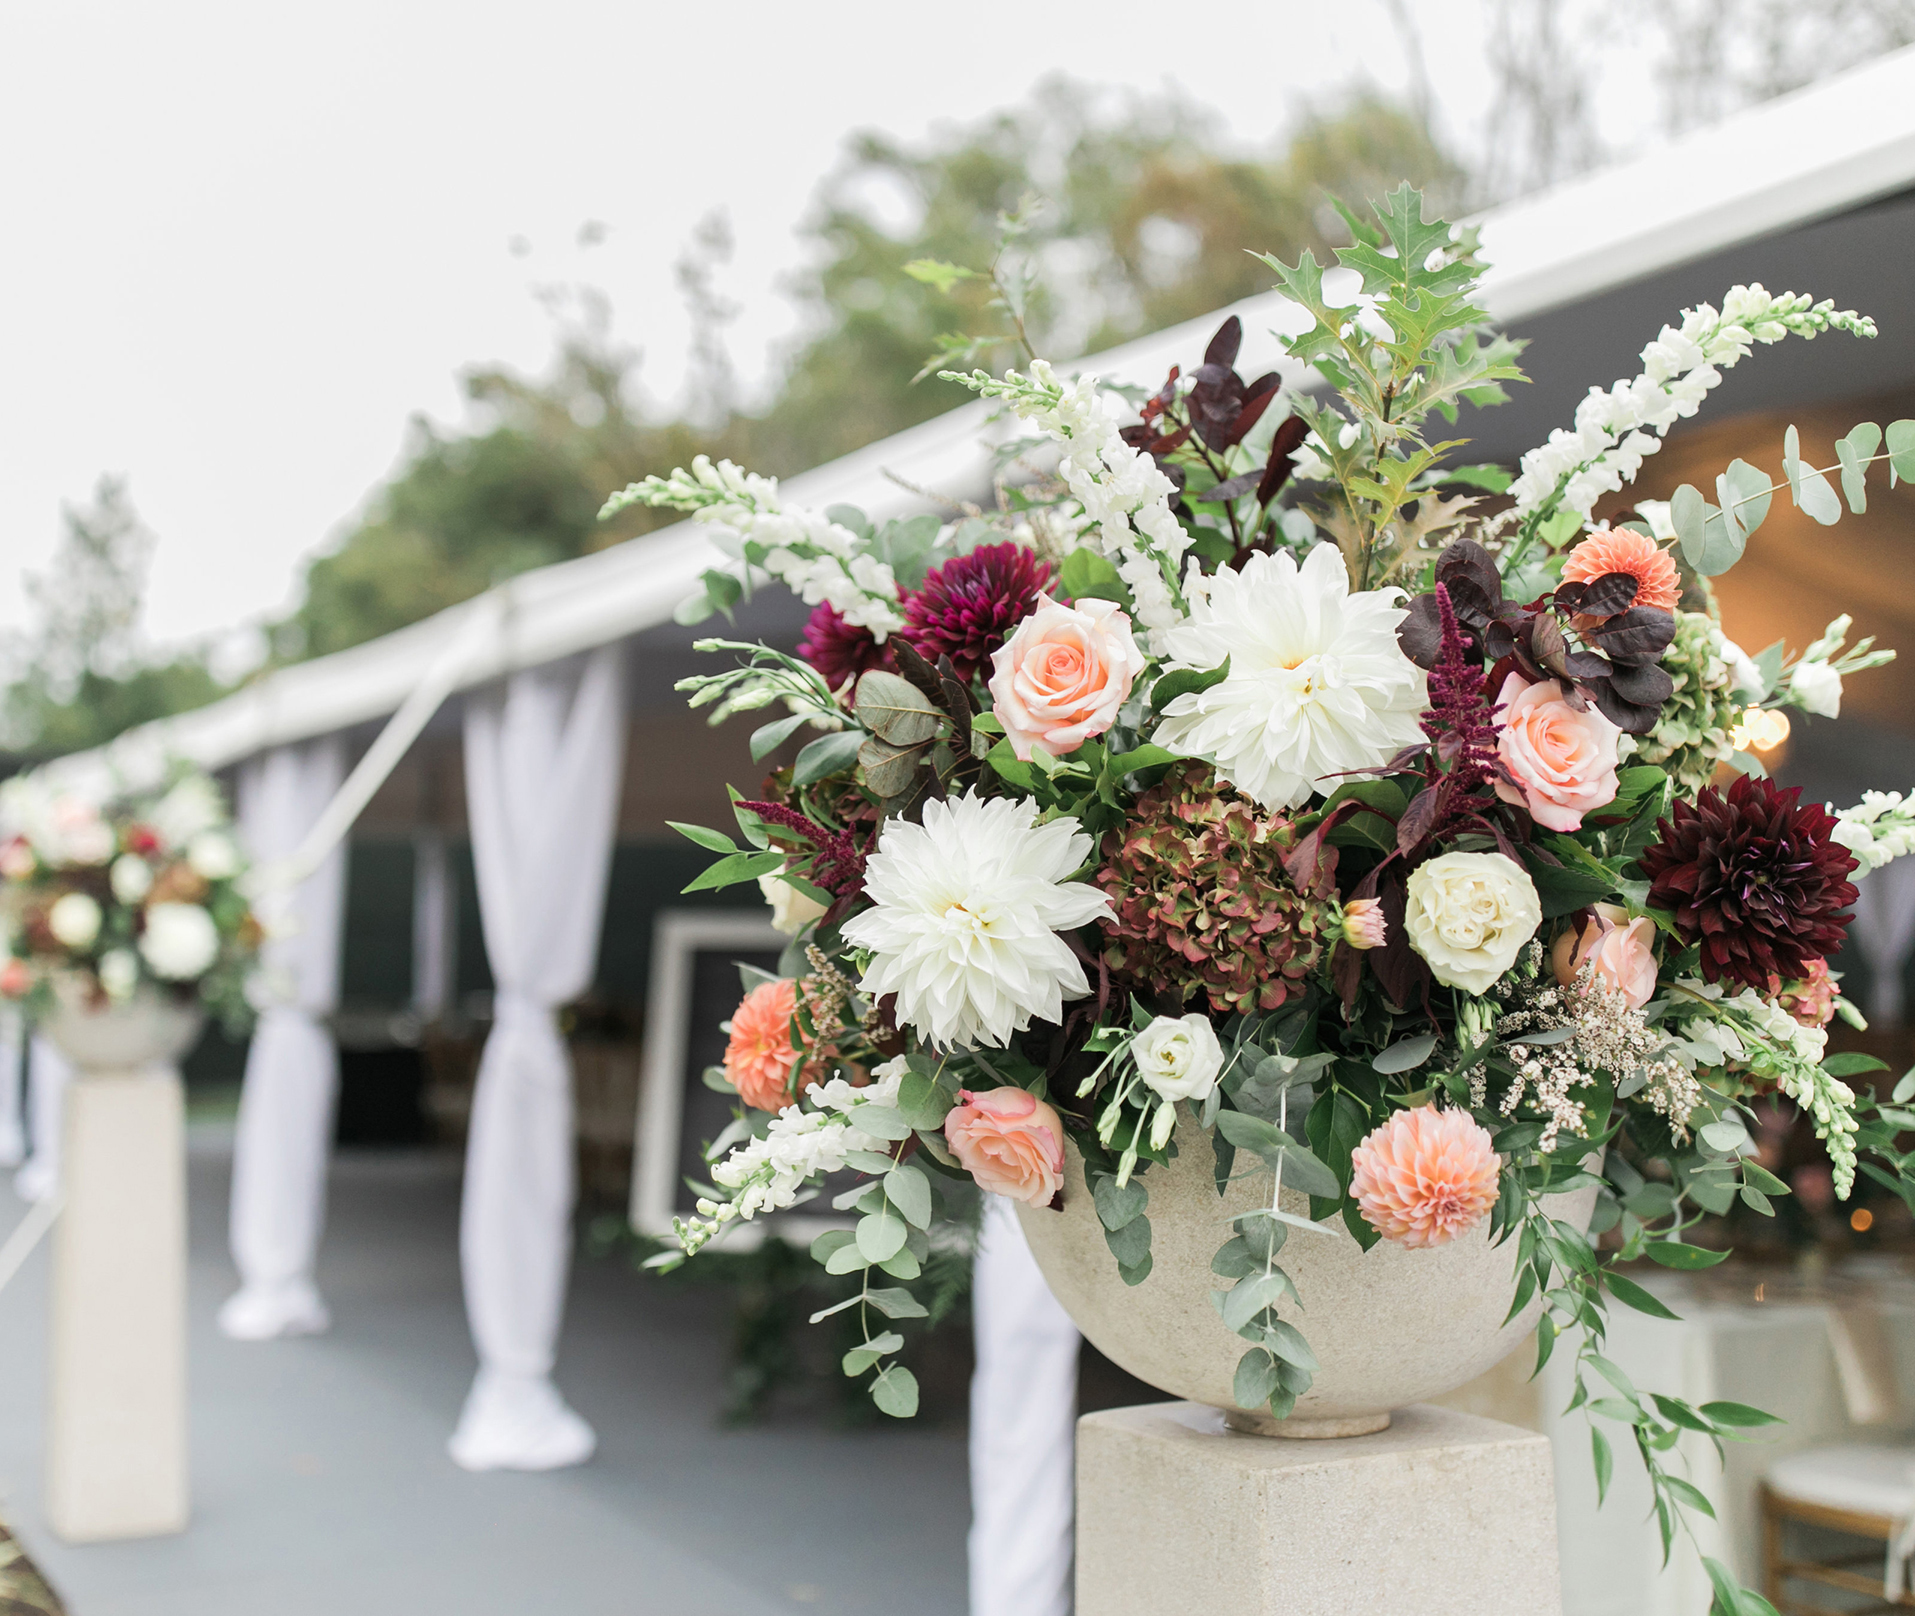 wedding_flowers_reception_autumn_outdoor_tent